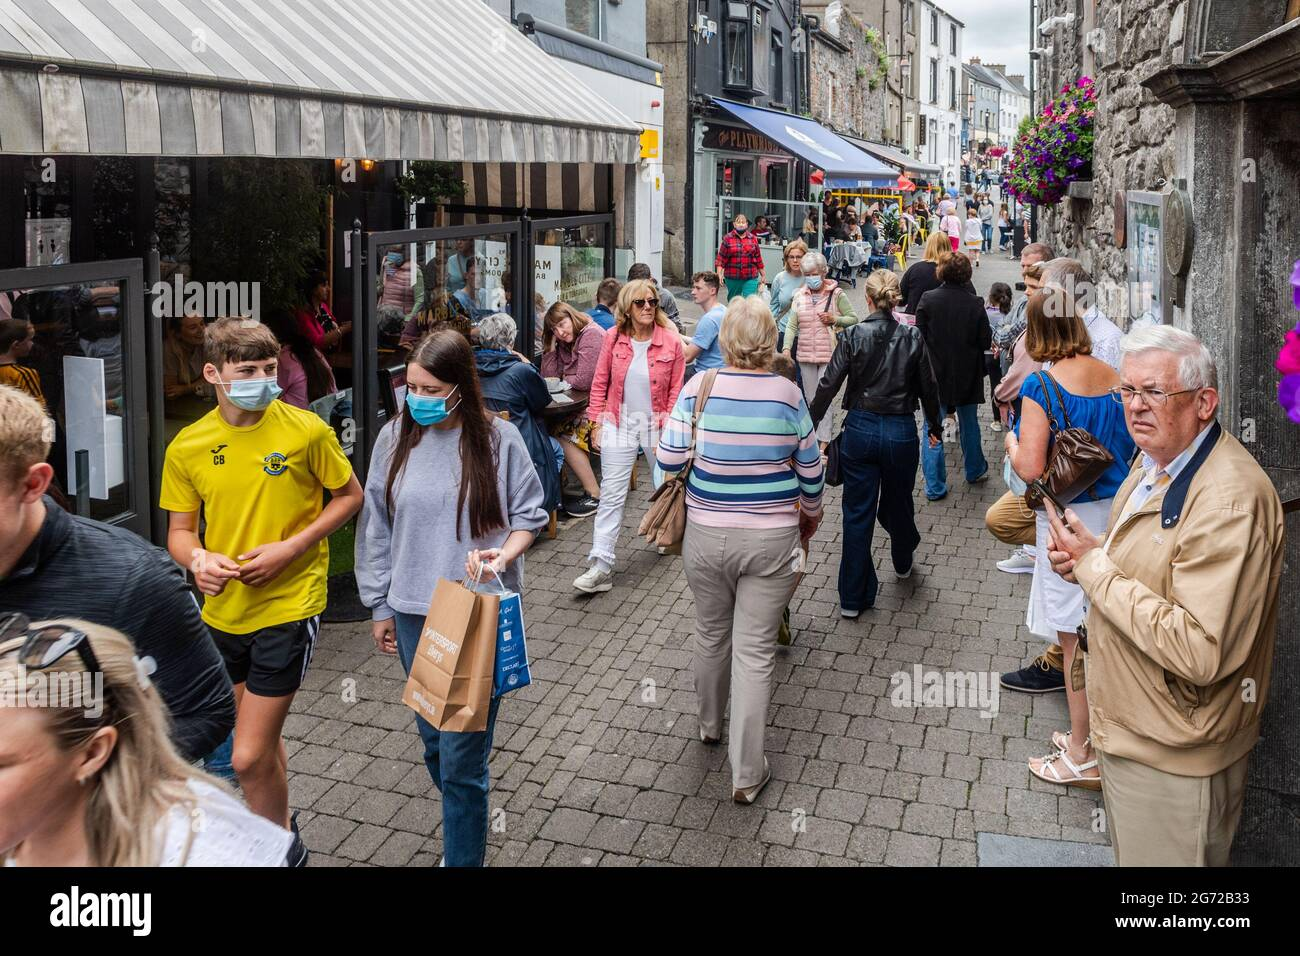 kilkenny-co-kilkenny-ireland-10th-july-2021-streets-were-very-busy-in-kilkenny-today-with-most-people-not-wearing-facemasks-or-practicing-social-distancing-outdoor-eating-proved-popular-as-no-return-date-for-indoor-dining-has-been-forthcoming-from-the-government-credit-ag-newsalamy-live-news-2G72B33.jpg